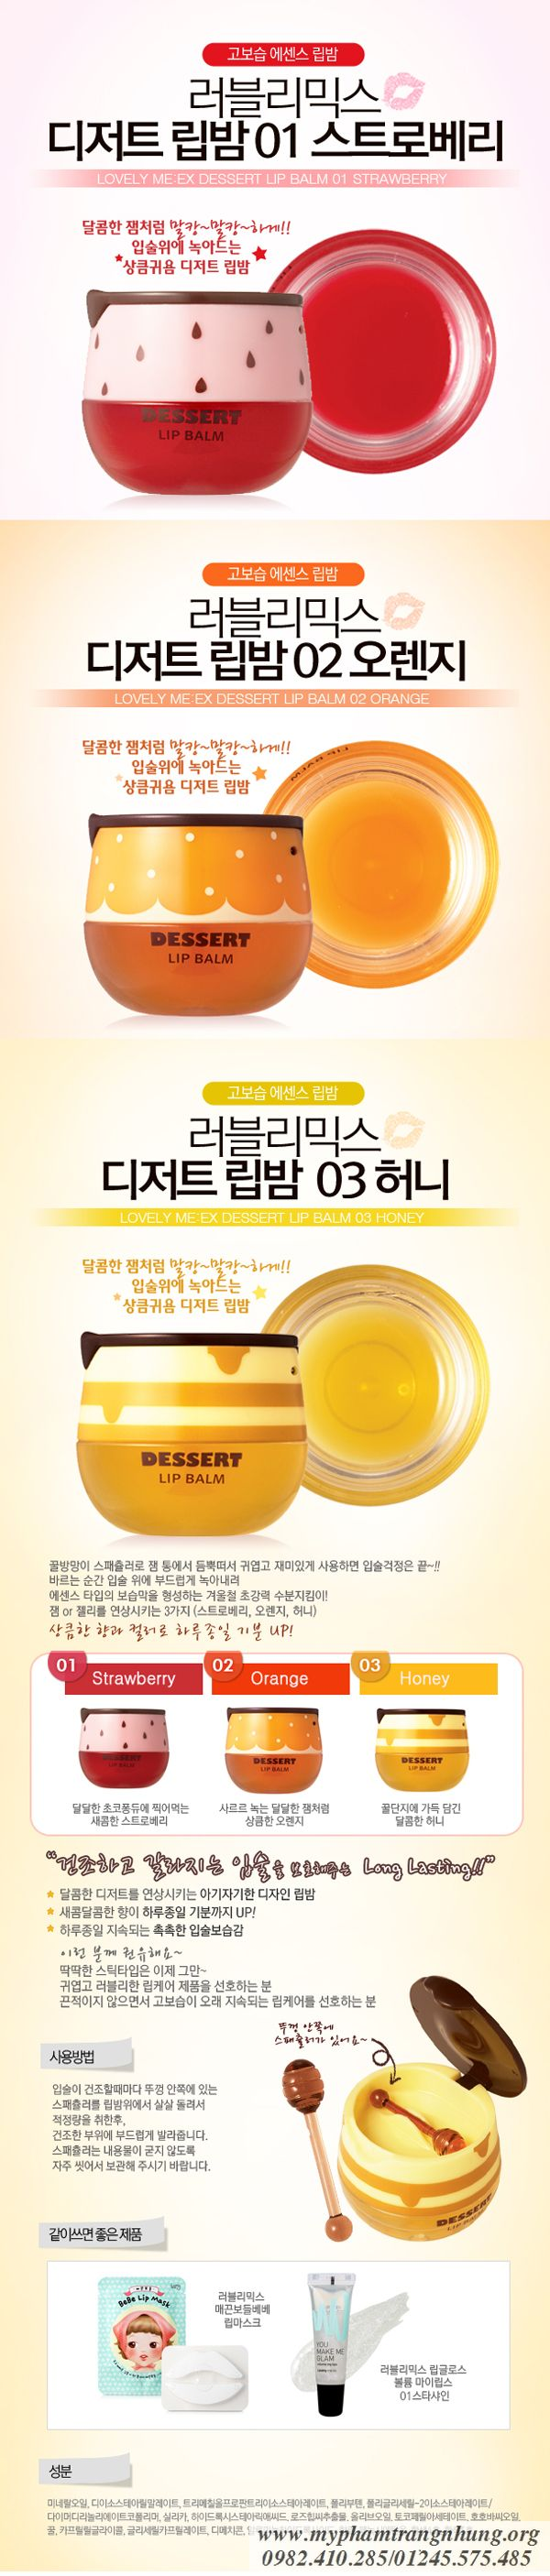 honey-son-duong-moi-lovely-meex-dessert-lip-balm-the-face-shop_result